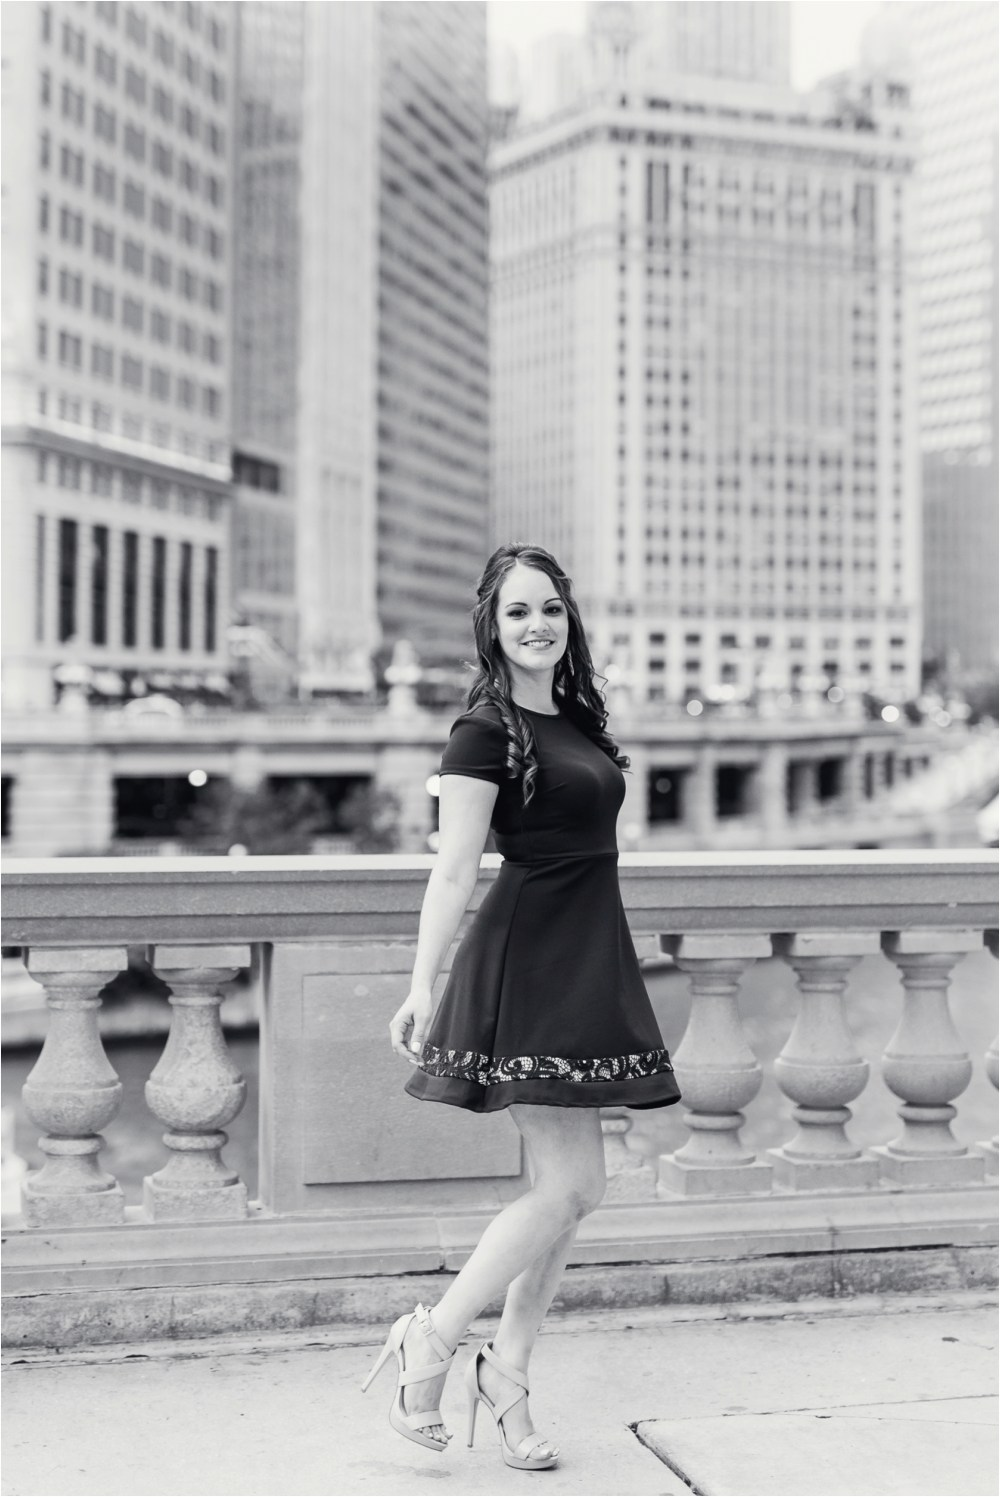 chicago-ilinois-michigna-ave-city-downtown-engagement-photo-31.jpg